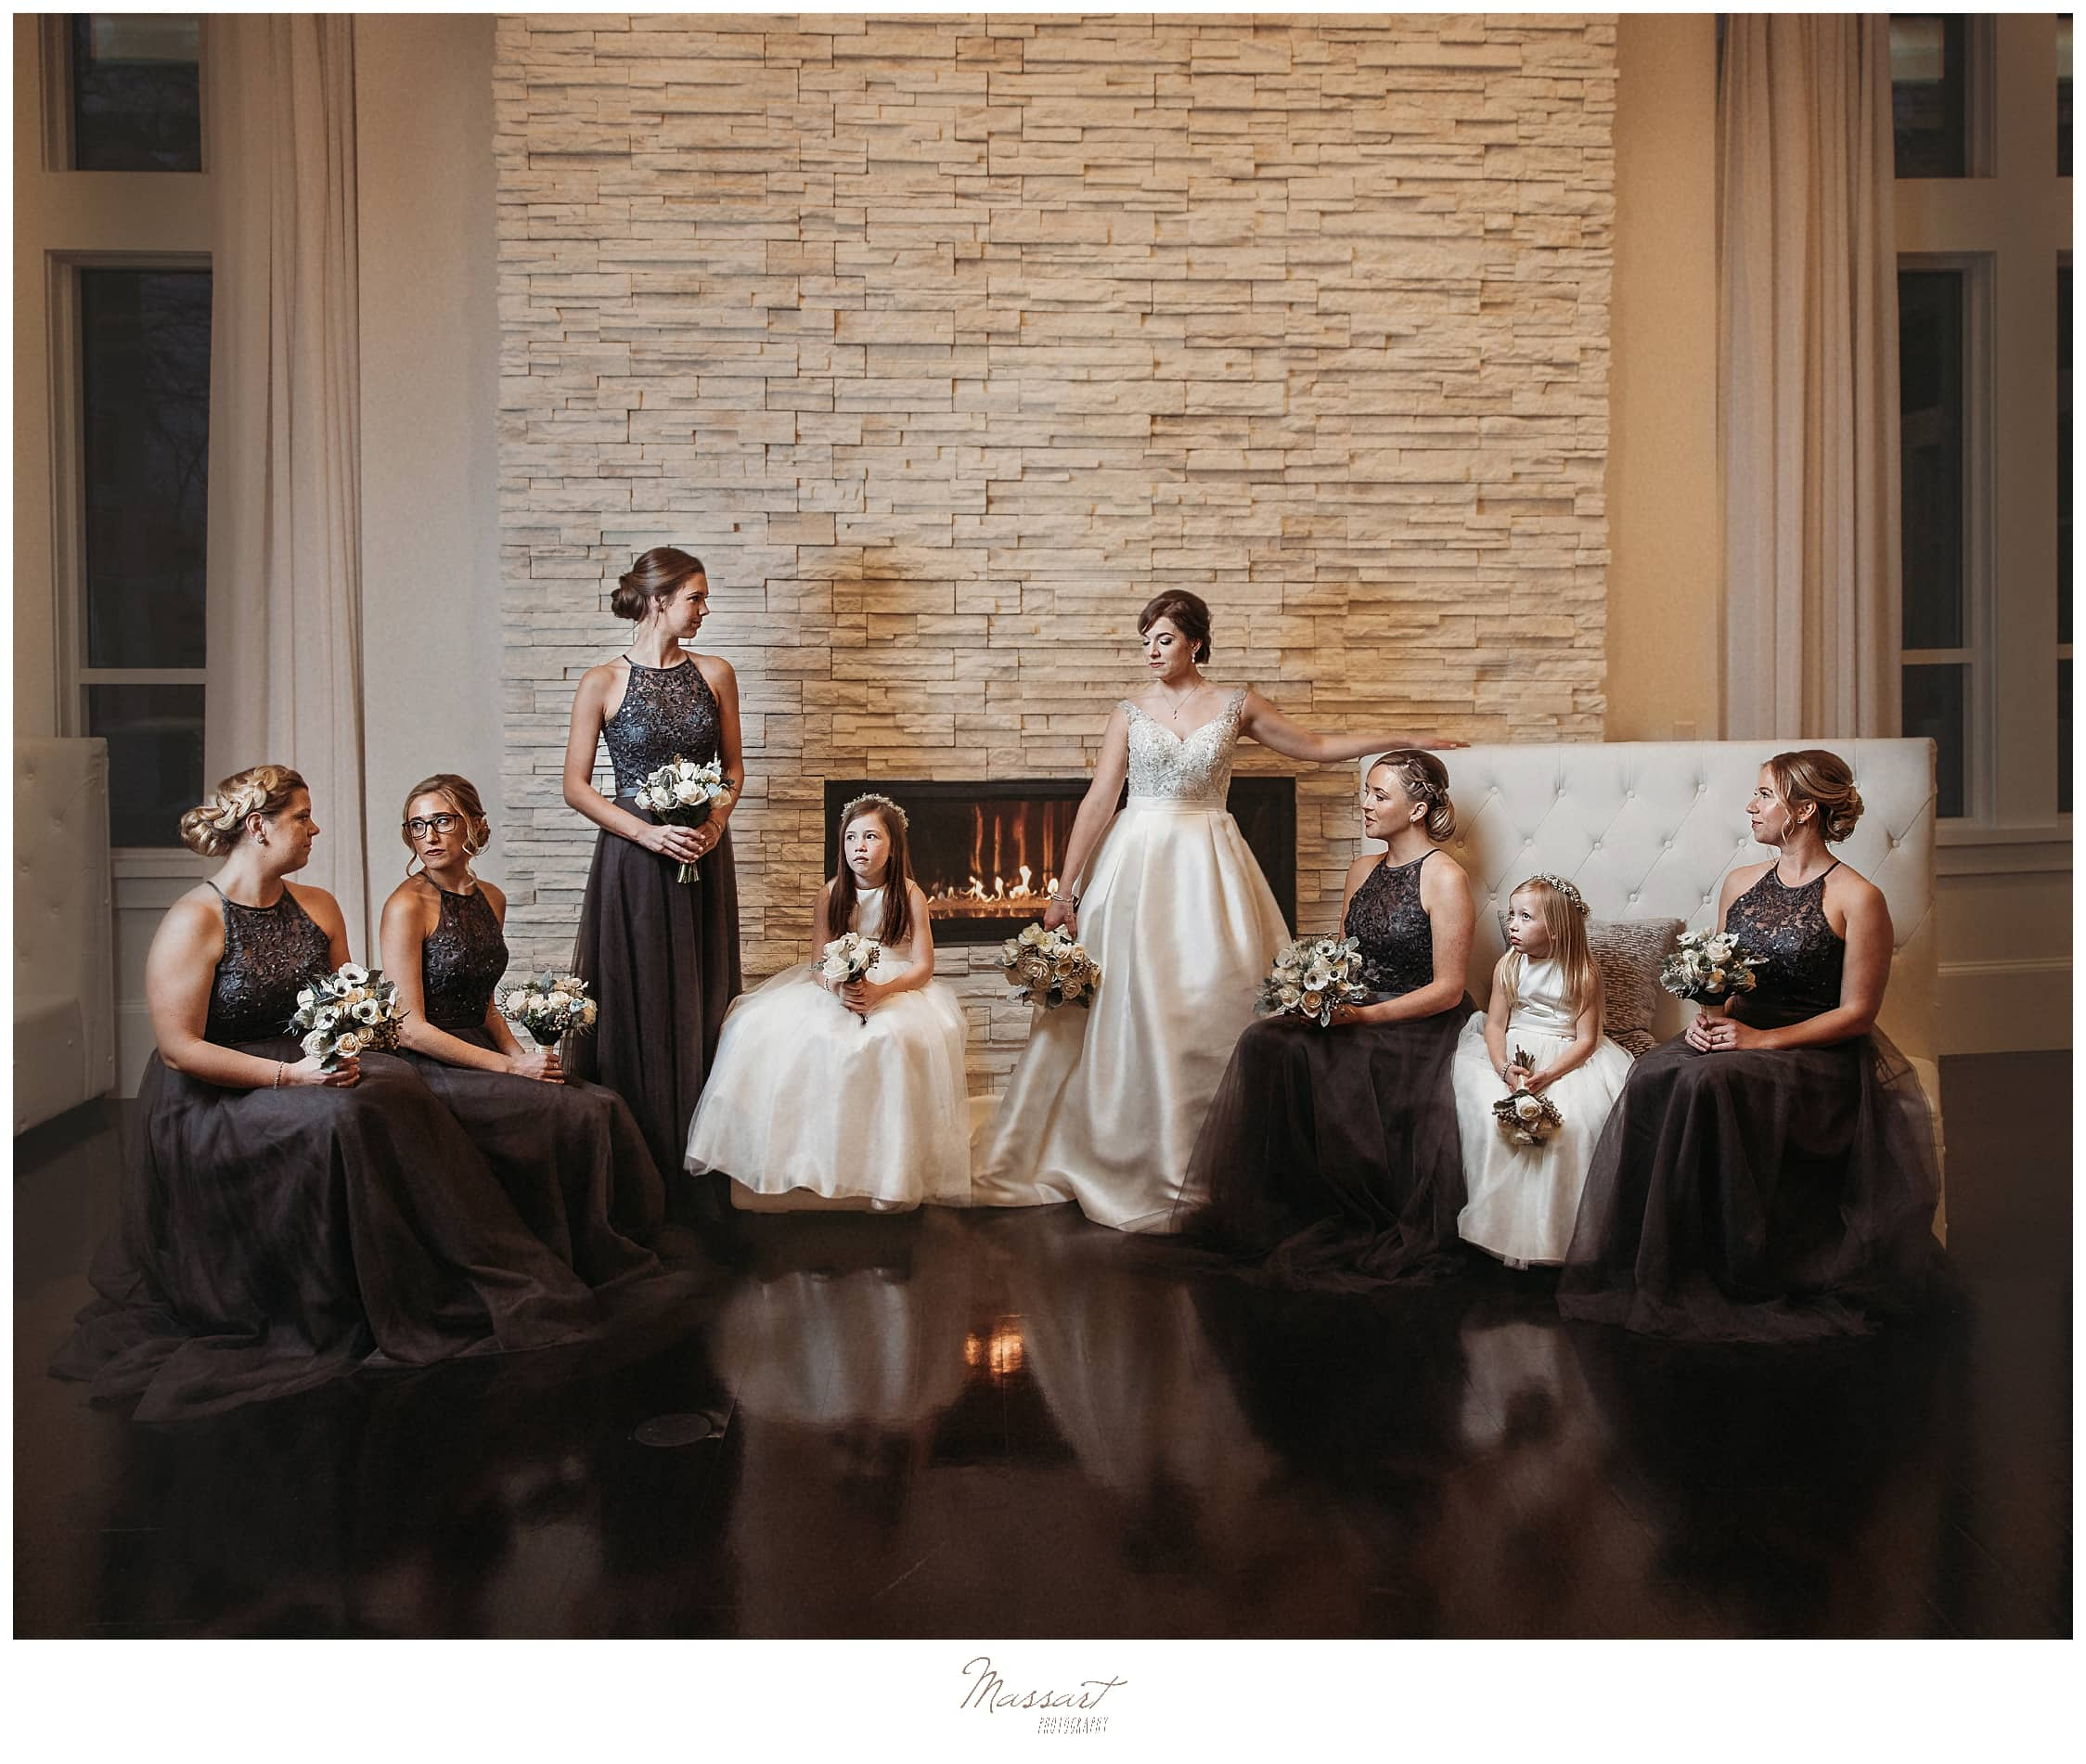 bride with bridal party in grey gowns and 2 flower girls by fireplace photographed by Massart Photography